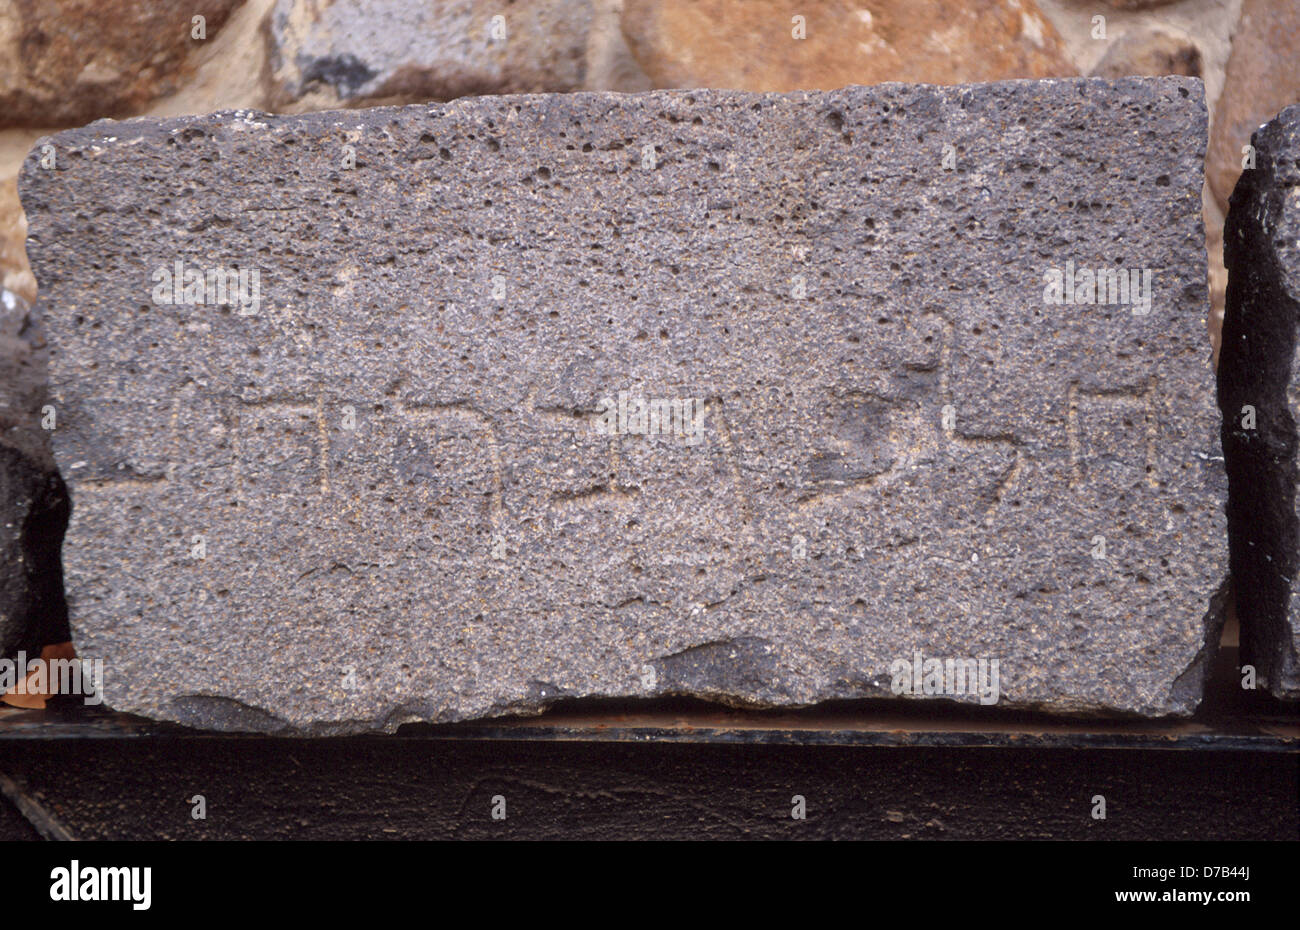 ancient hebrew inscription carved on stone in kazerin - Stock Image